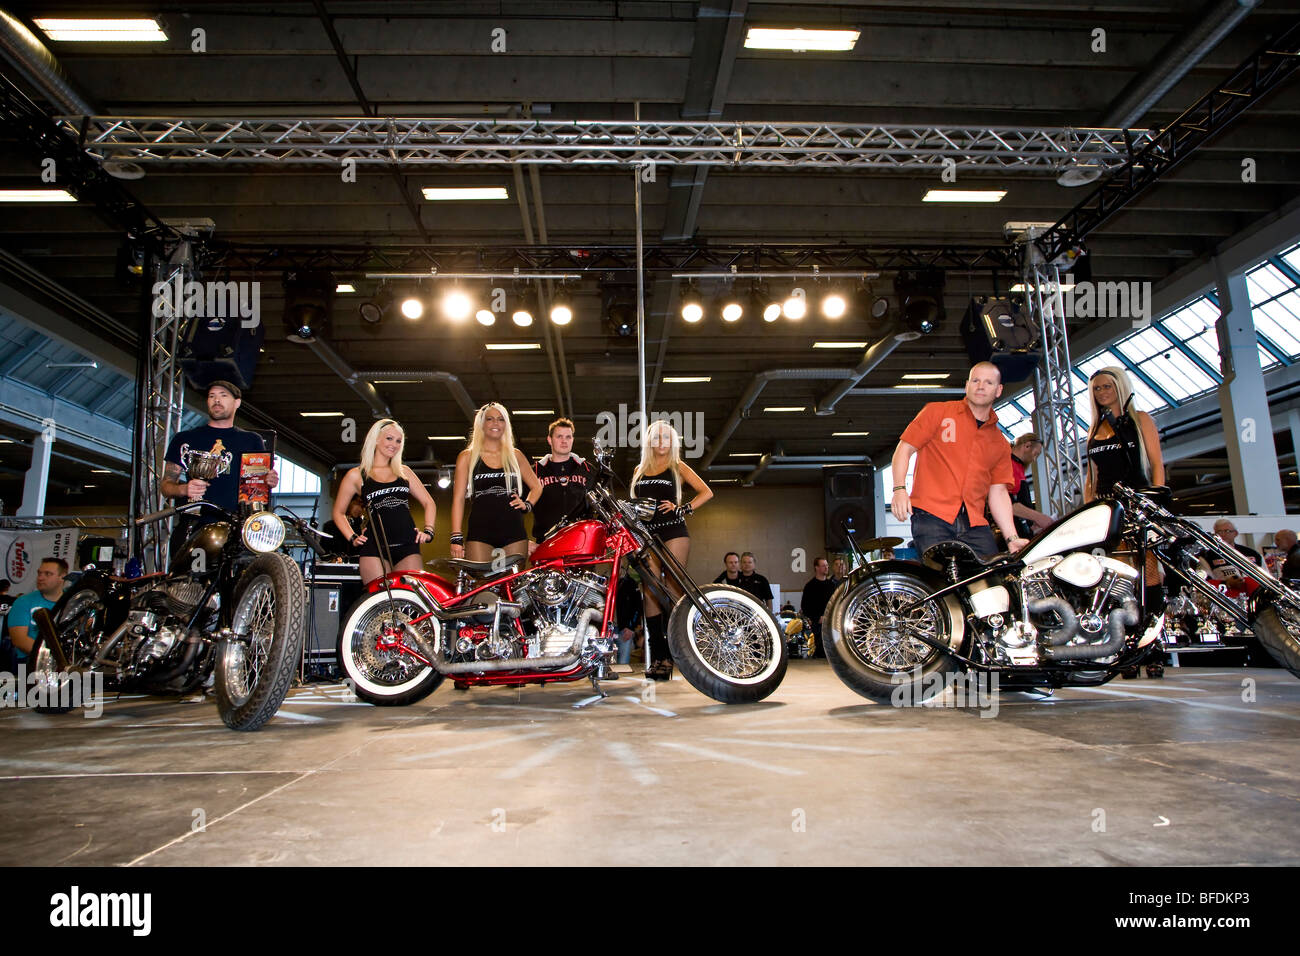 The winners in the Best Café Racer category at Scandinavian Custom Show in Bella Centret Copenhagen - Stock Image